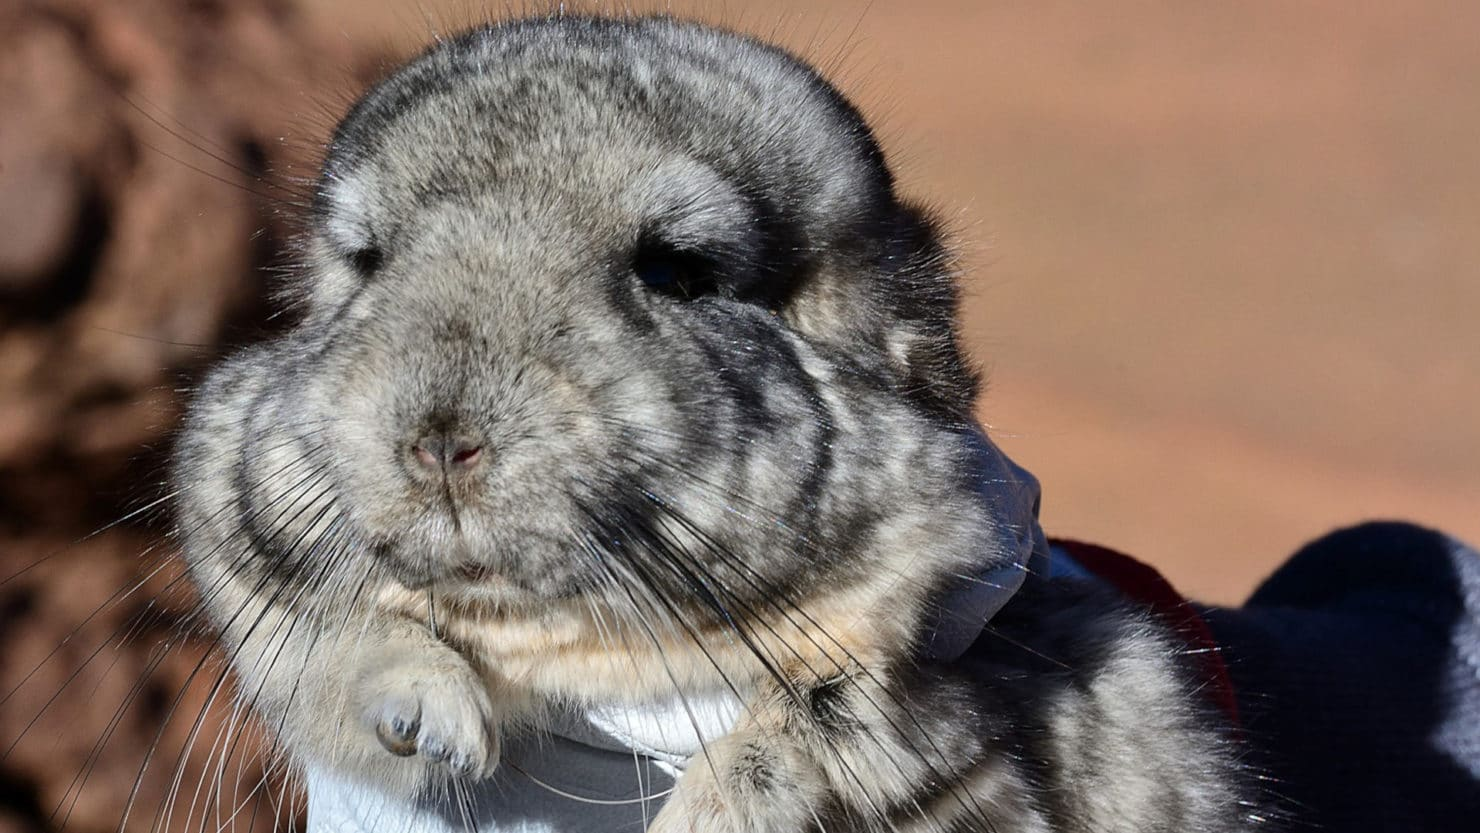 Operation chinchilla: How a mining company in Chile is trying to relocate rare rodents